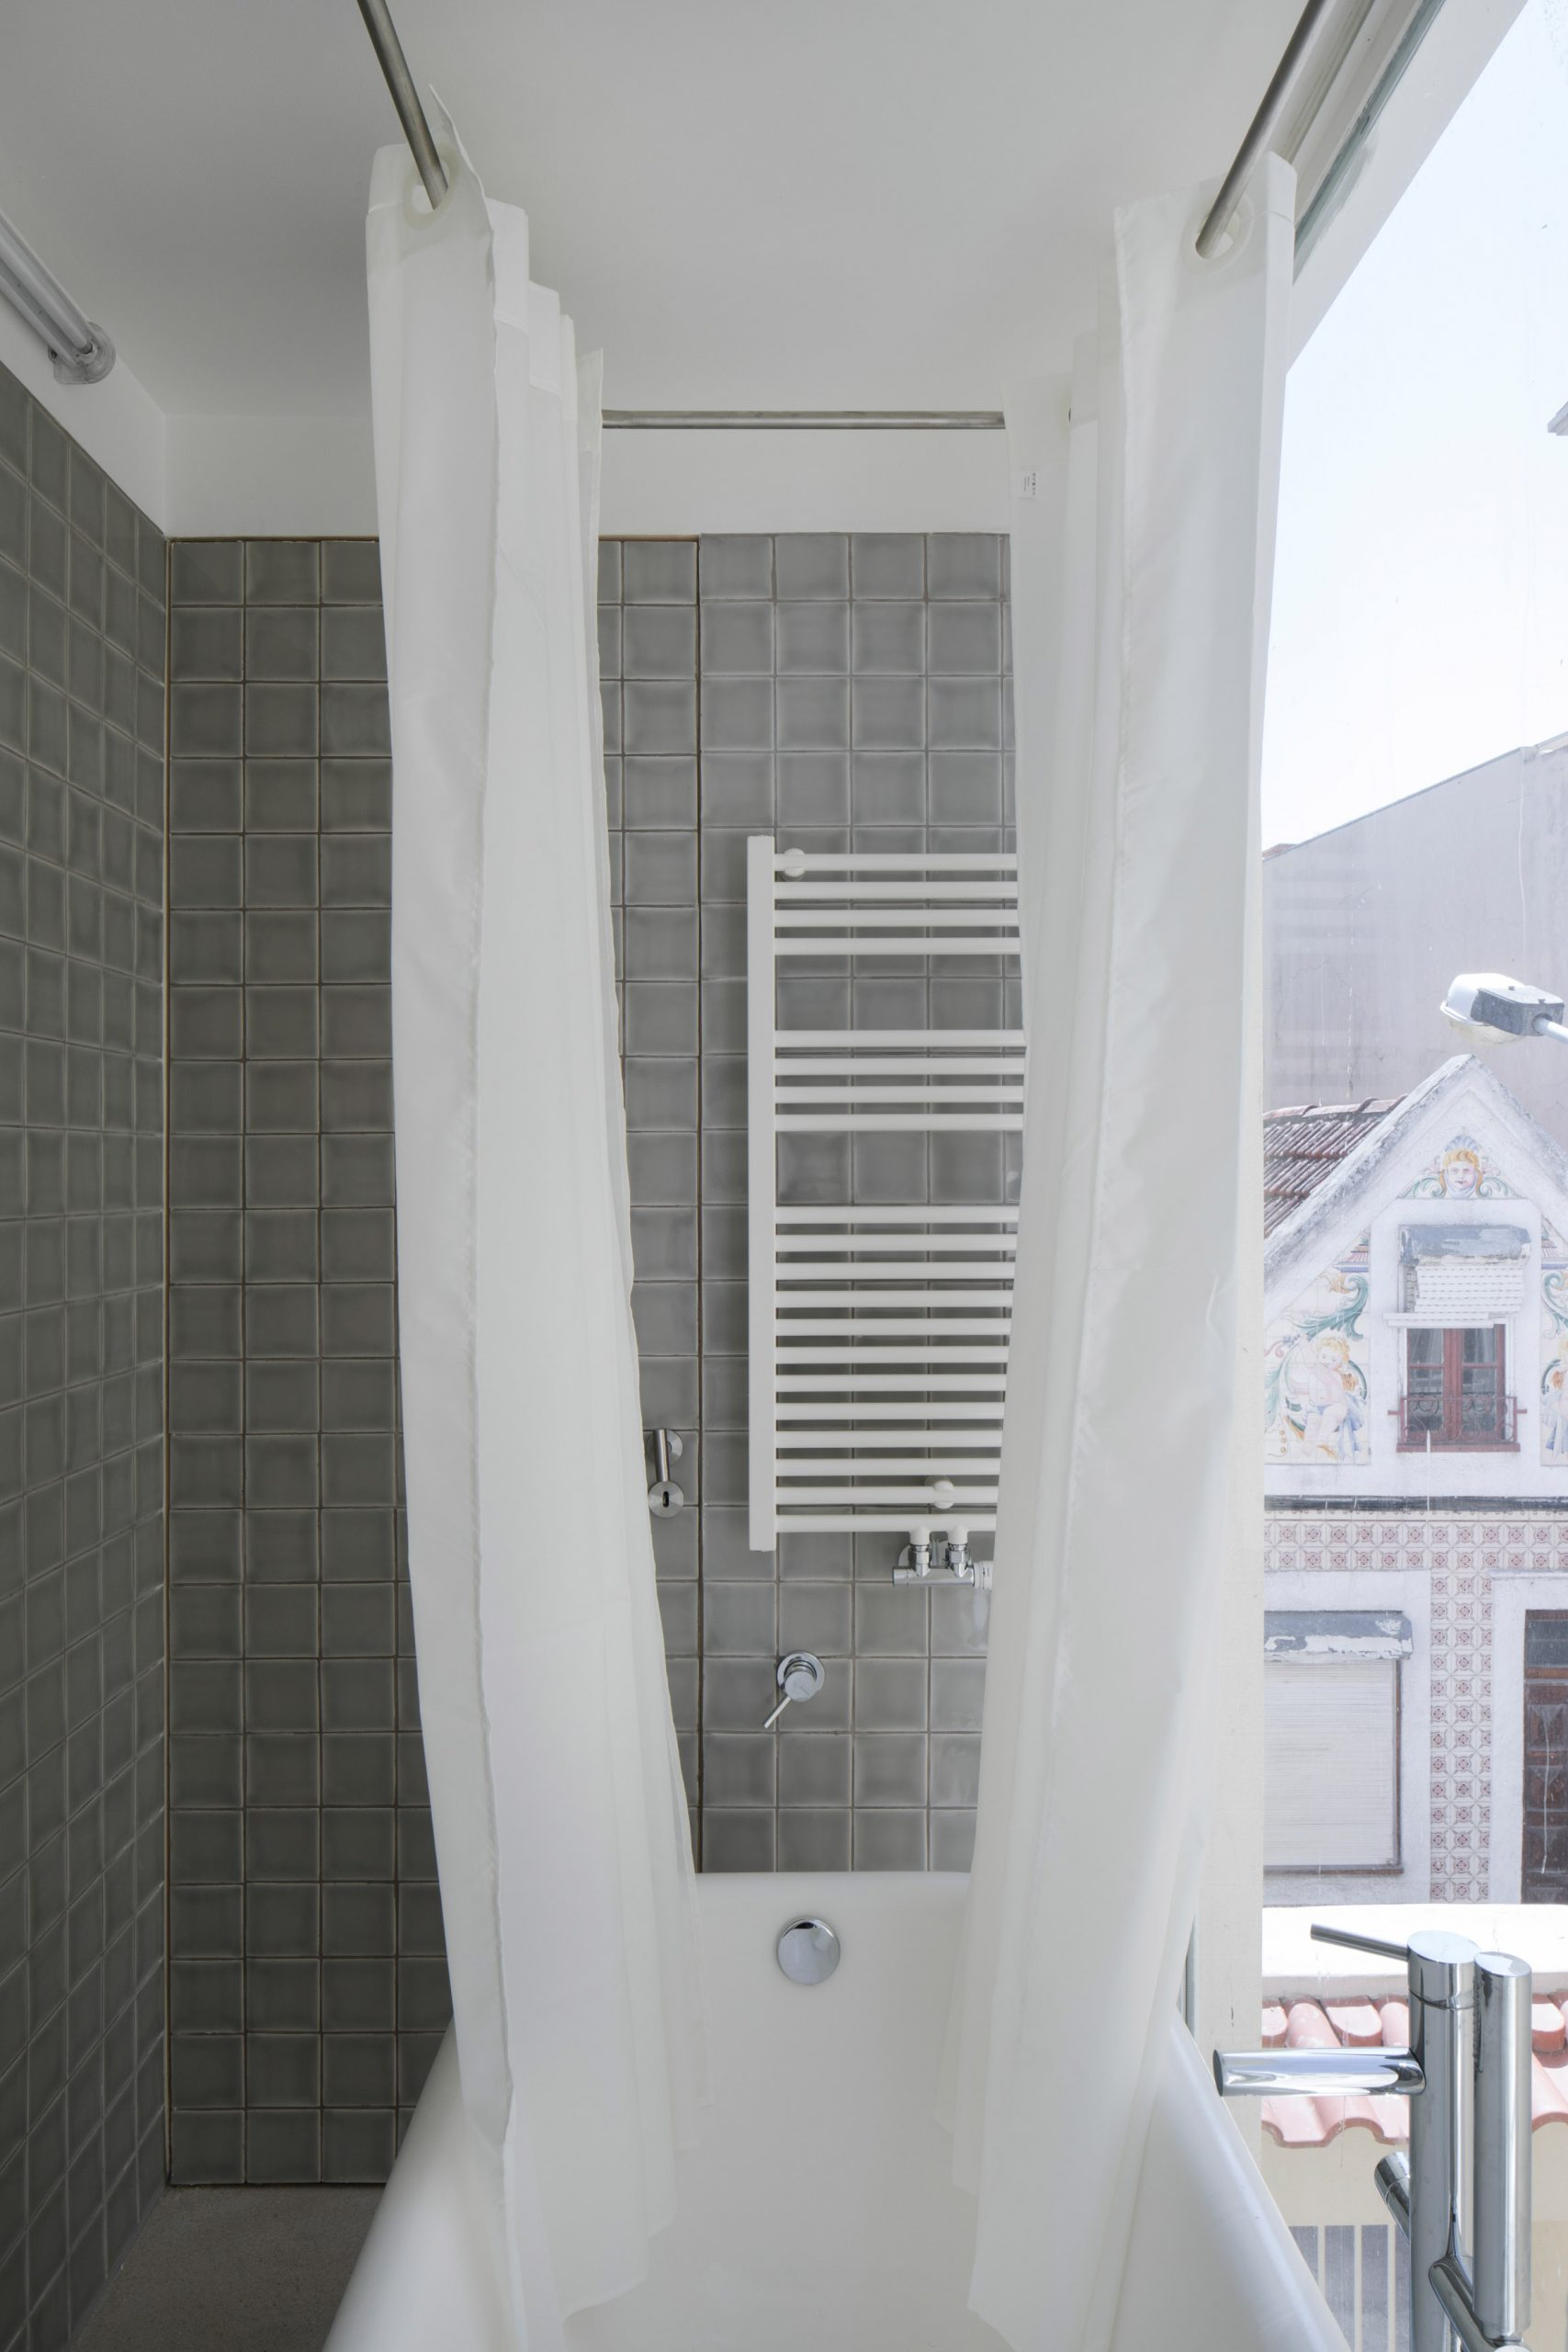 Upstairs bathroom on the Casa da Beiramar balcony